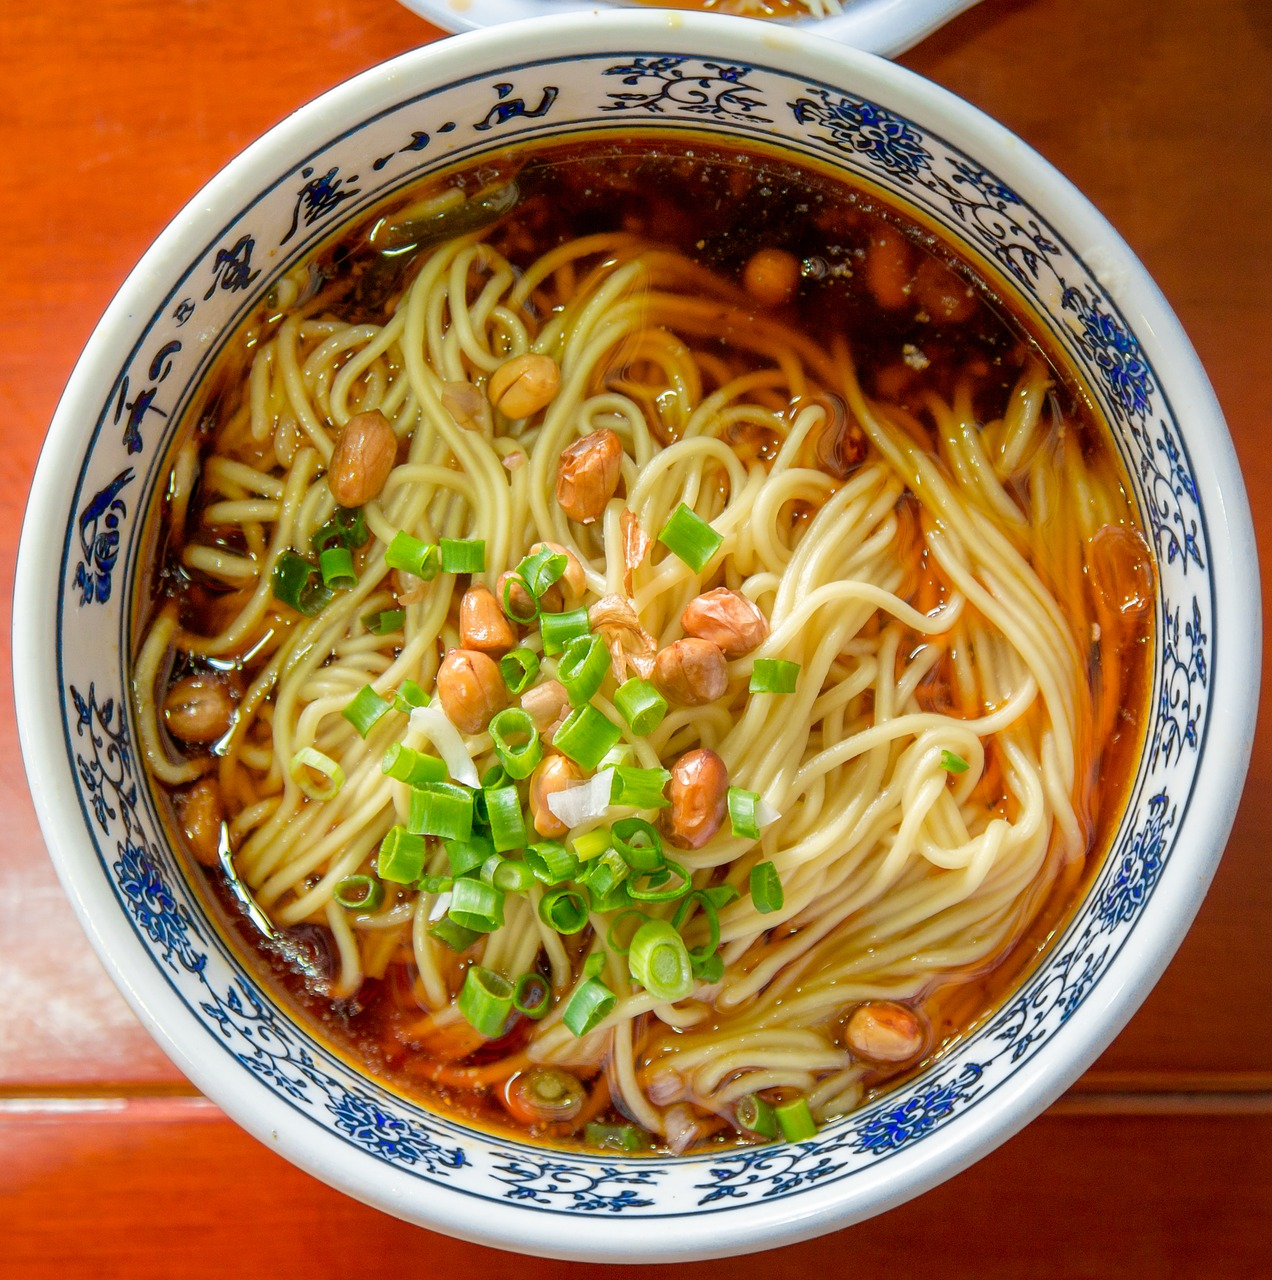 Chinese food is diverse and there is something to appease all kinds of taste buds. (Image: pixabay / CC0 1.0)